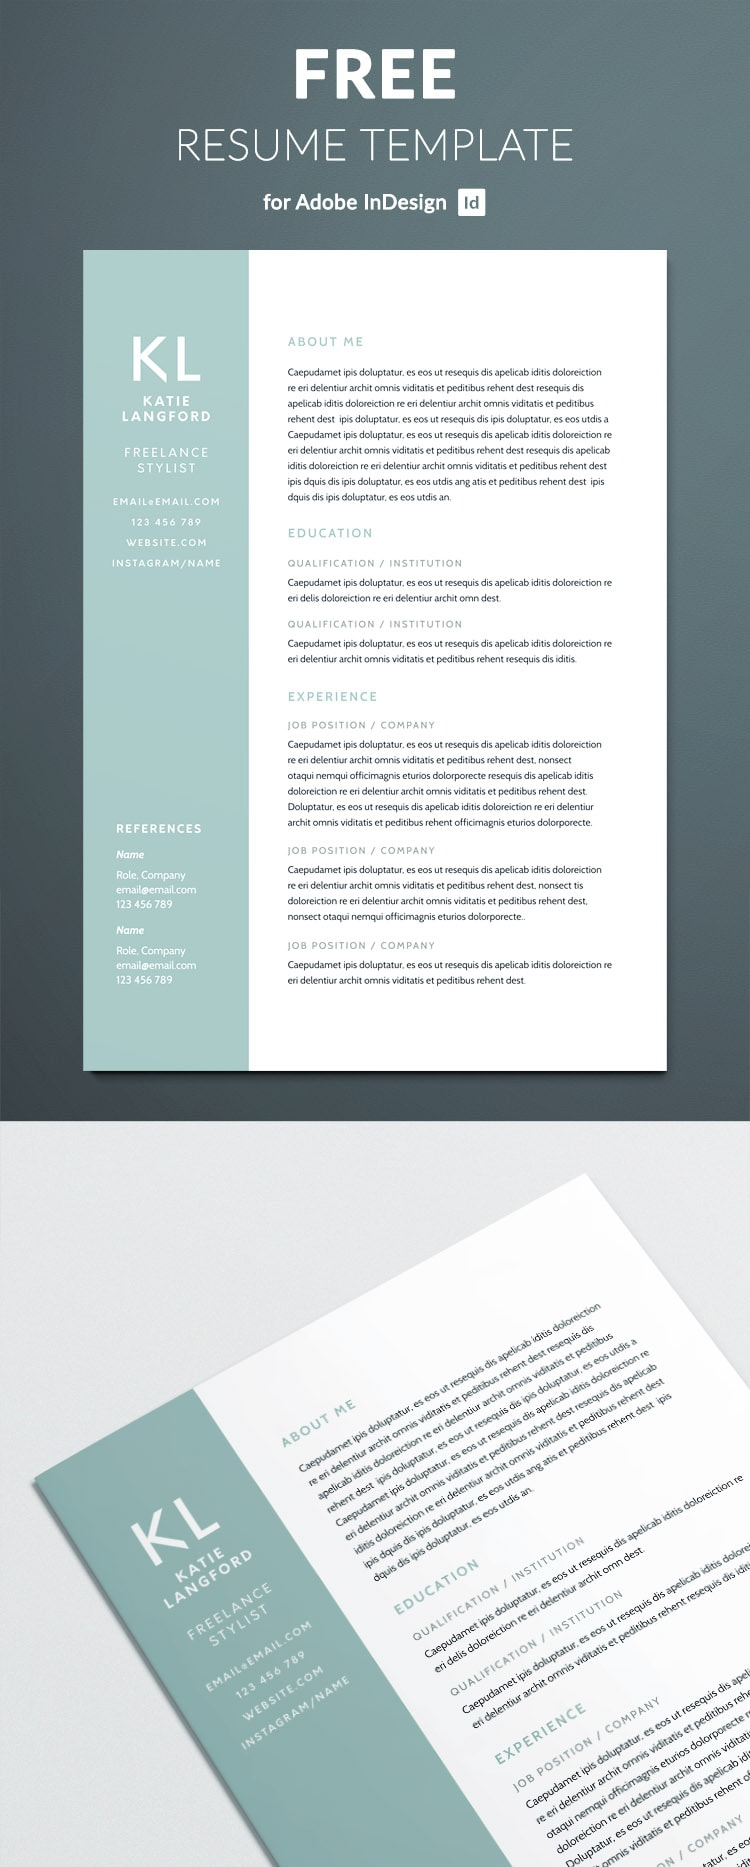 modern resume template for indesign free download. Black Bedroom Furniture Sets. Home Design Ideas